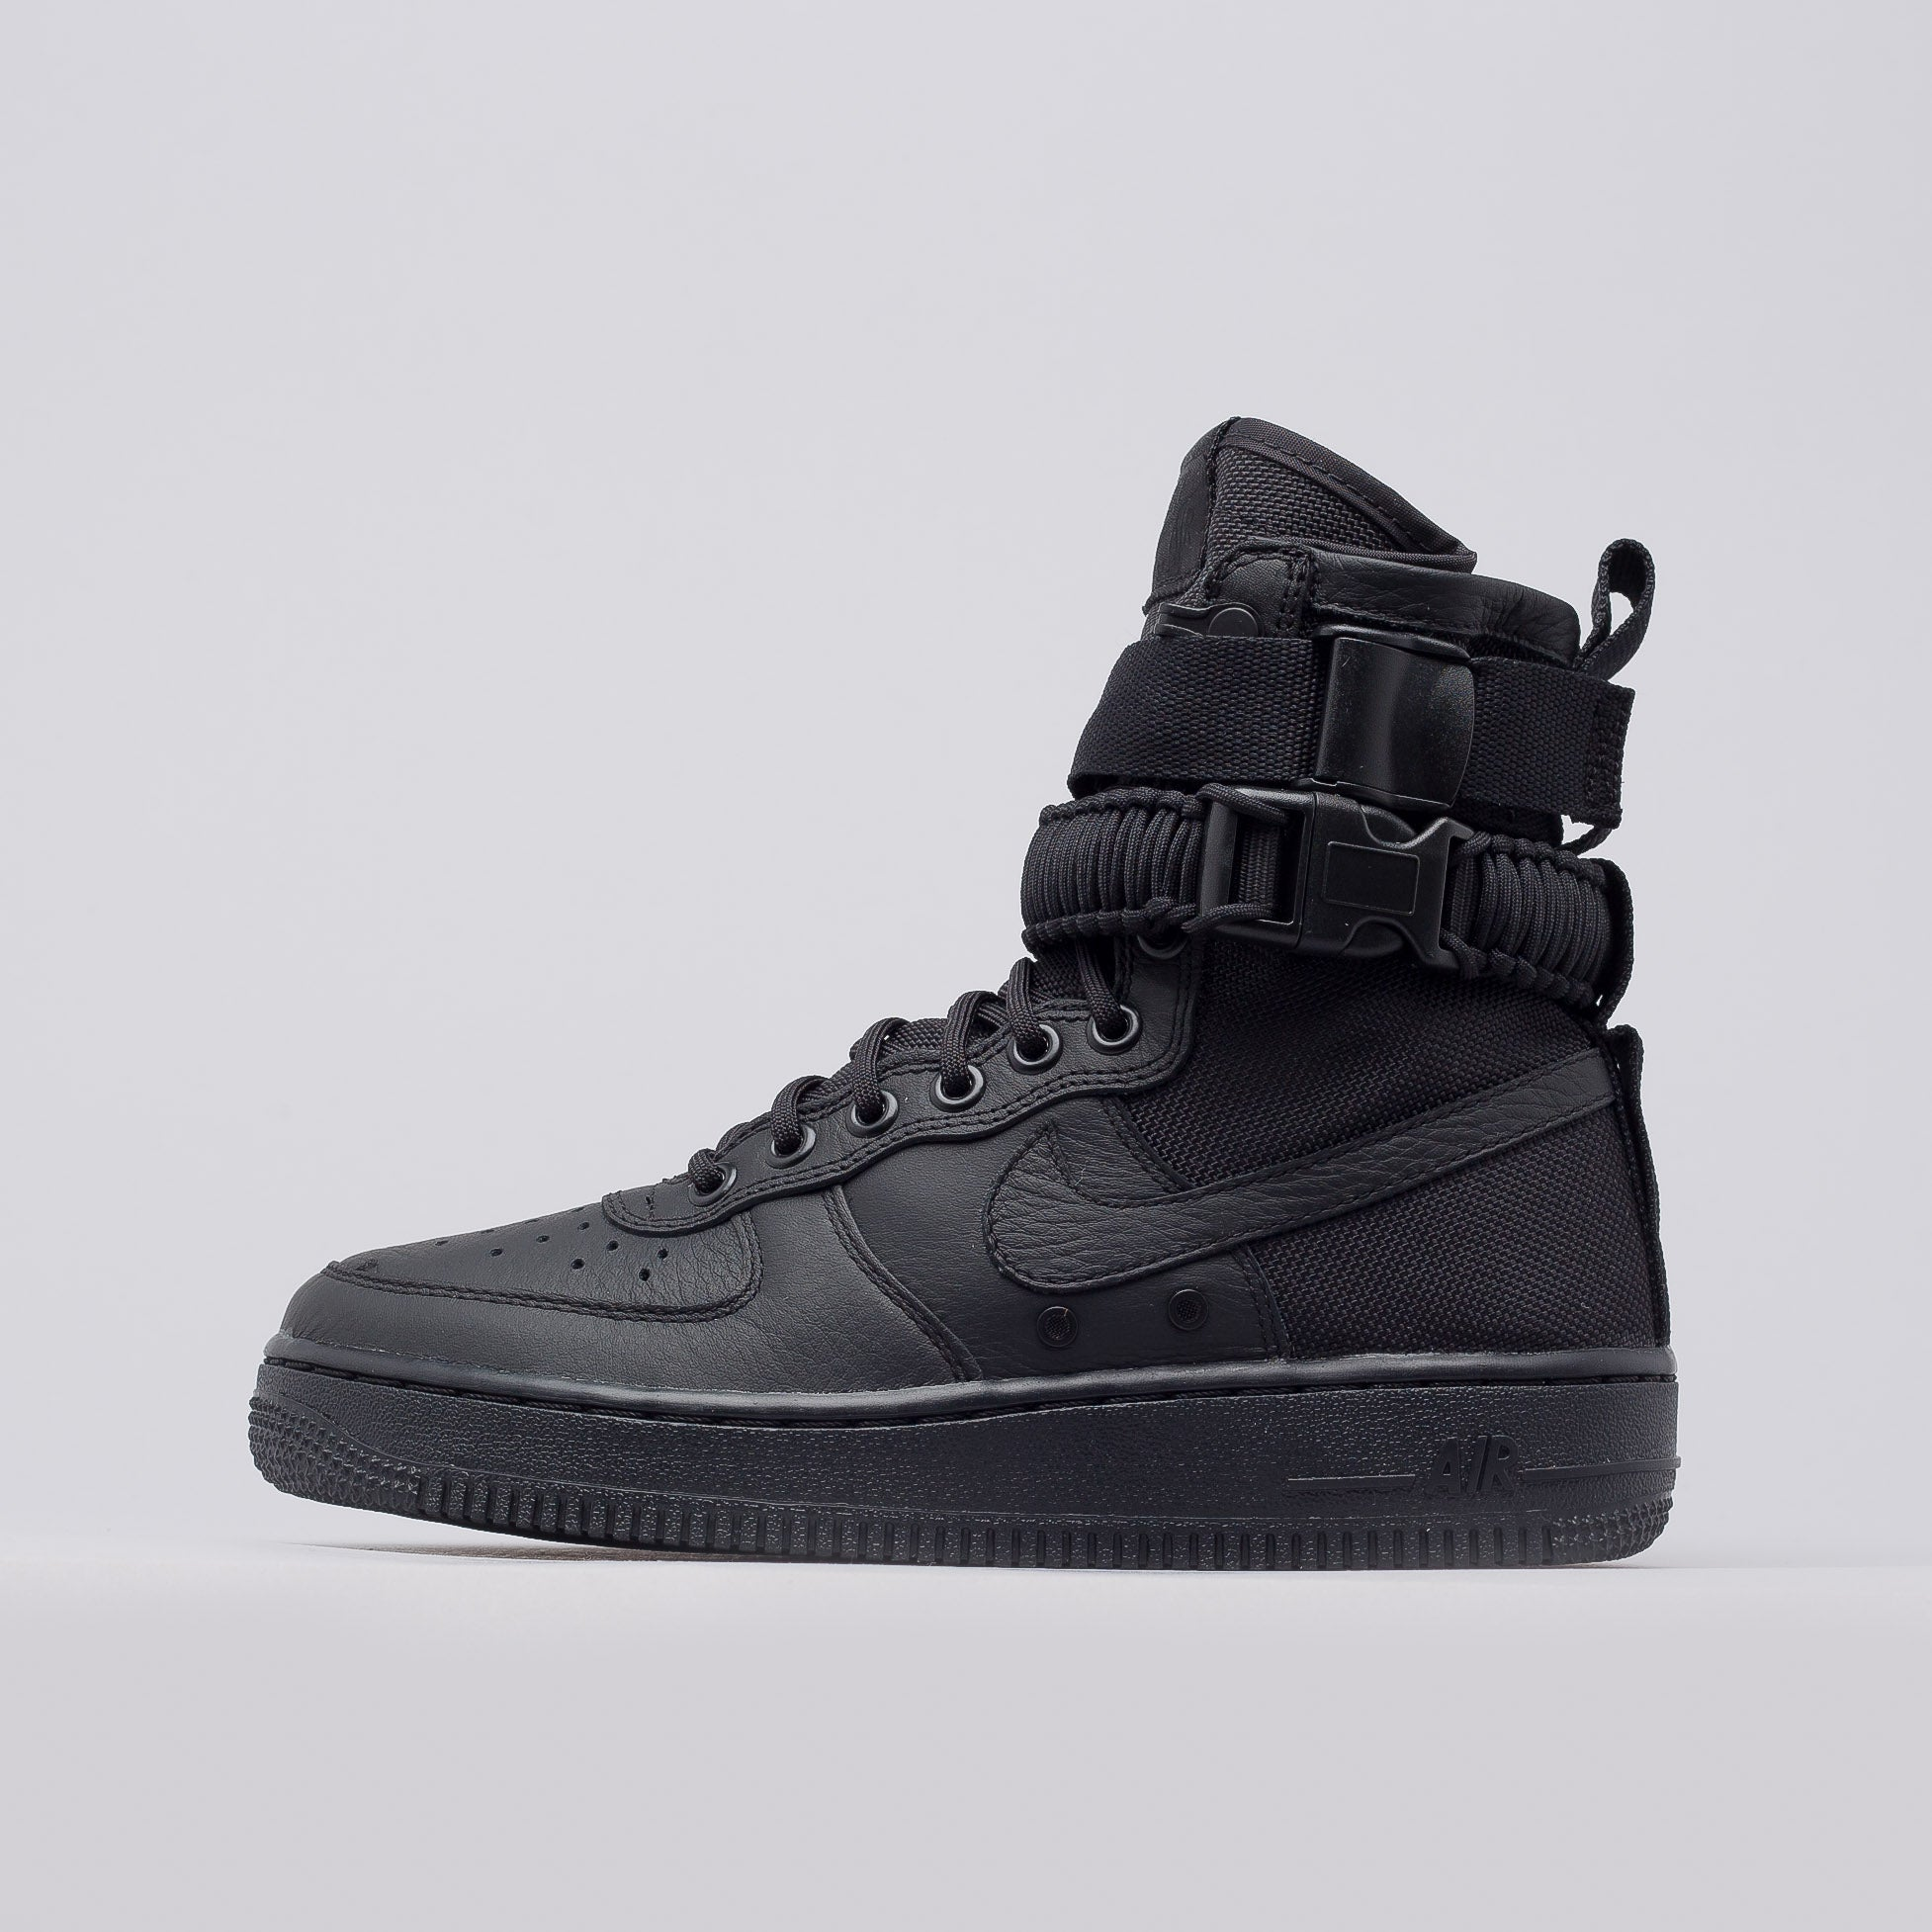 Nike SF Air Force 1 Women's Lifestyle Shoes Black oZ8052L